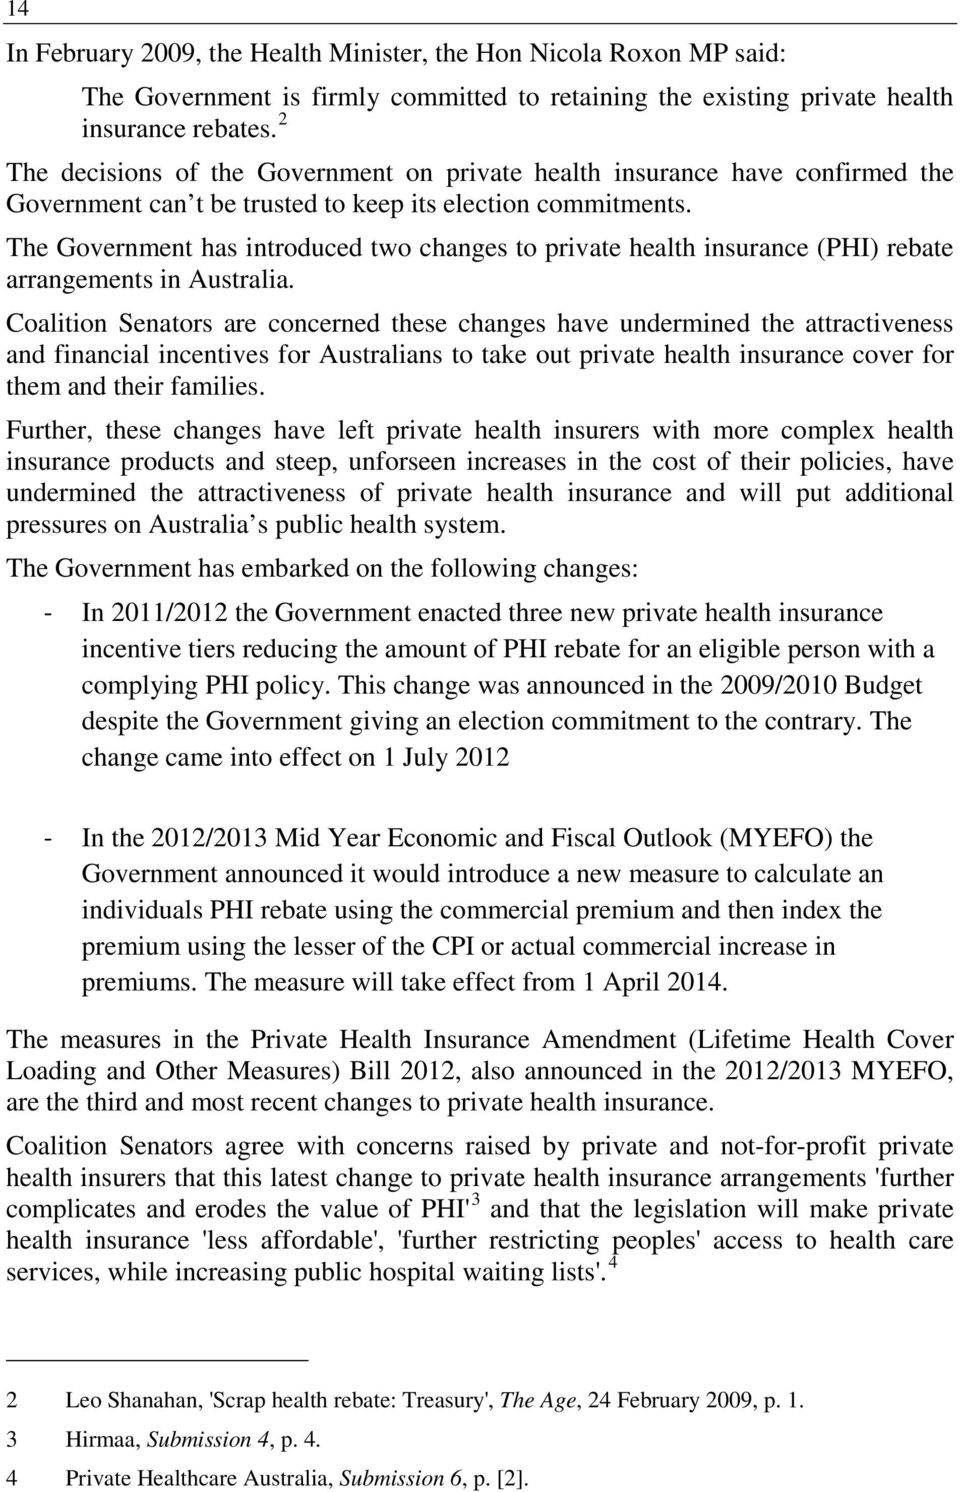 The Government has introduced two changes to private health insurance (PHI) rebate arrangements in Australia.